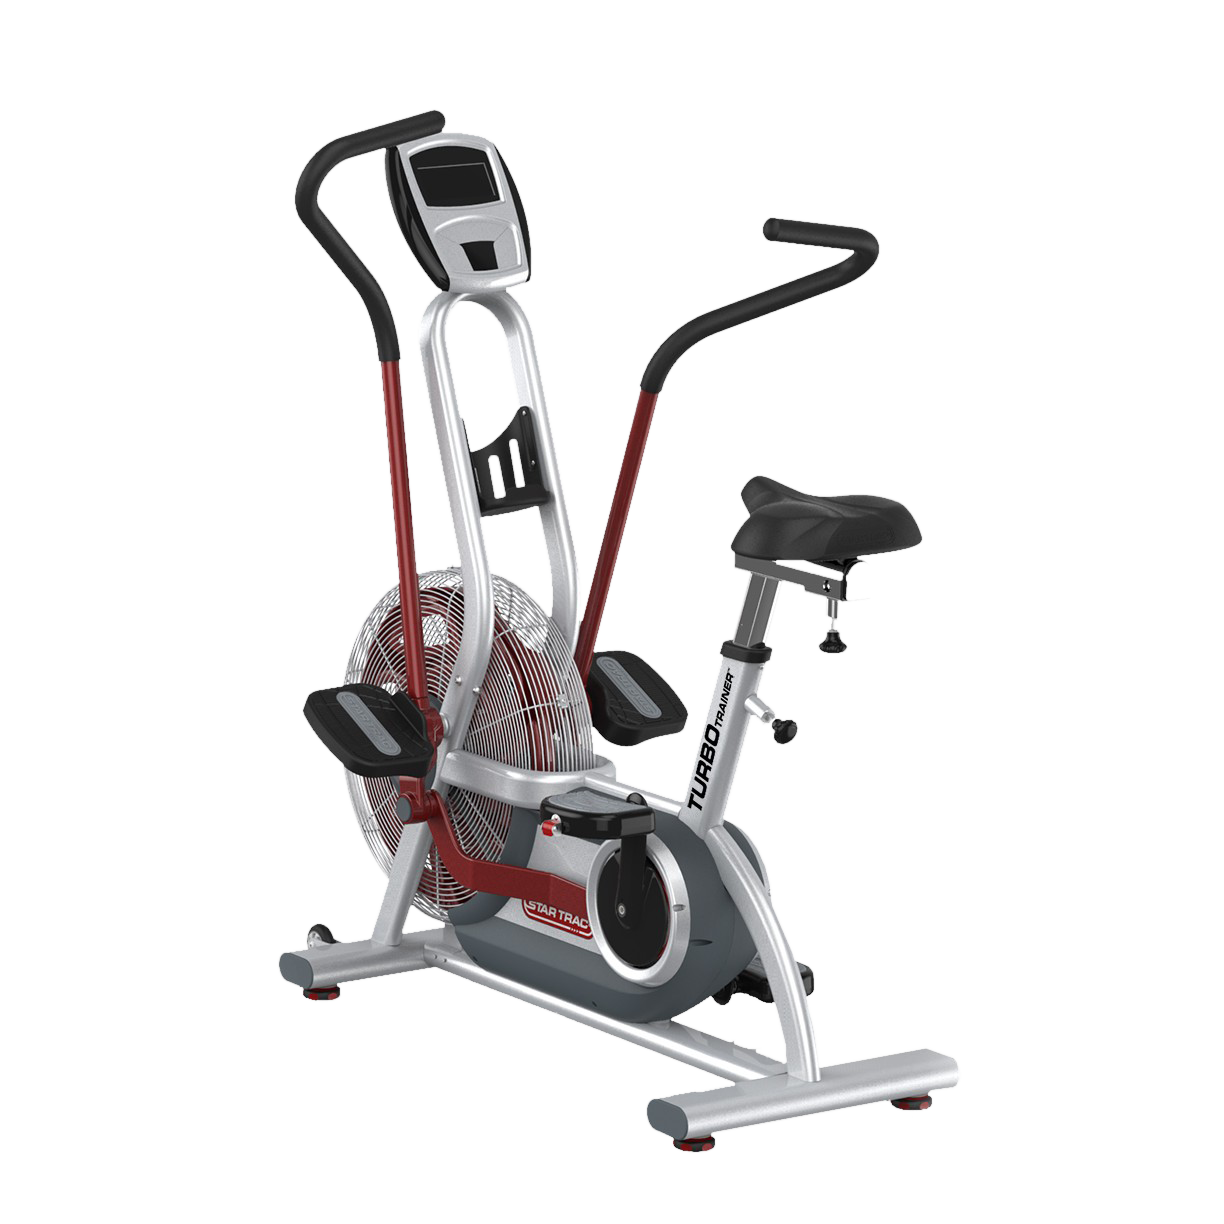 Turbo Trainer - StairMaster AirFit